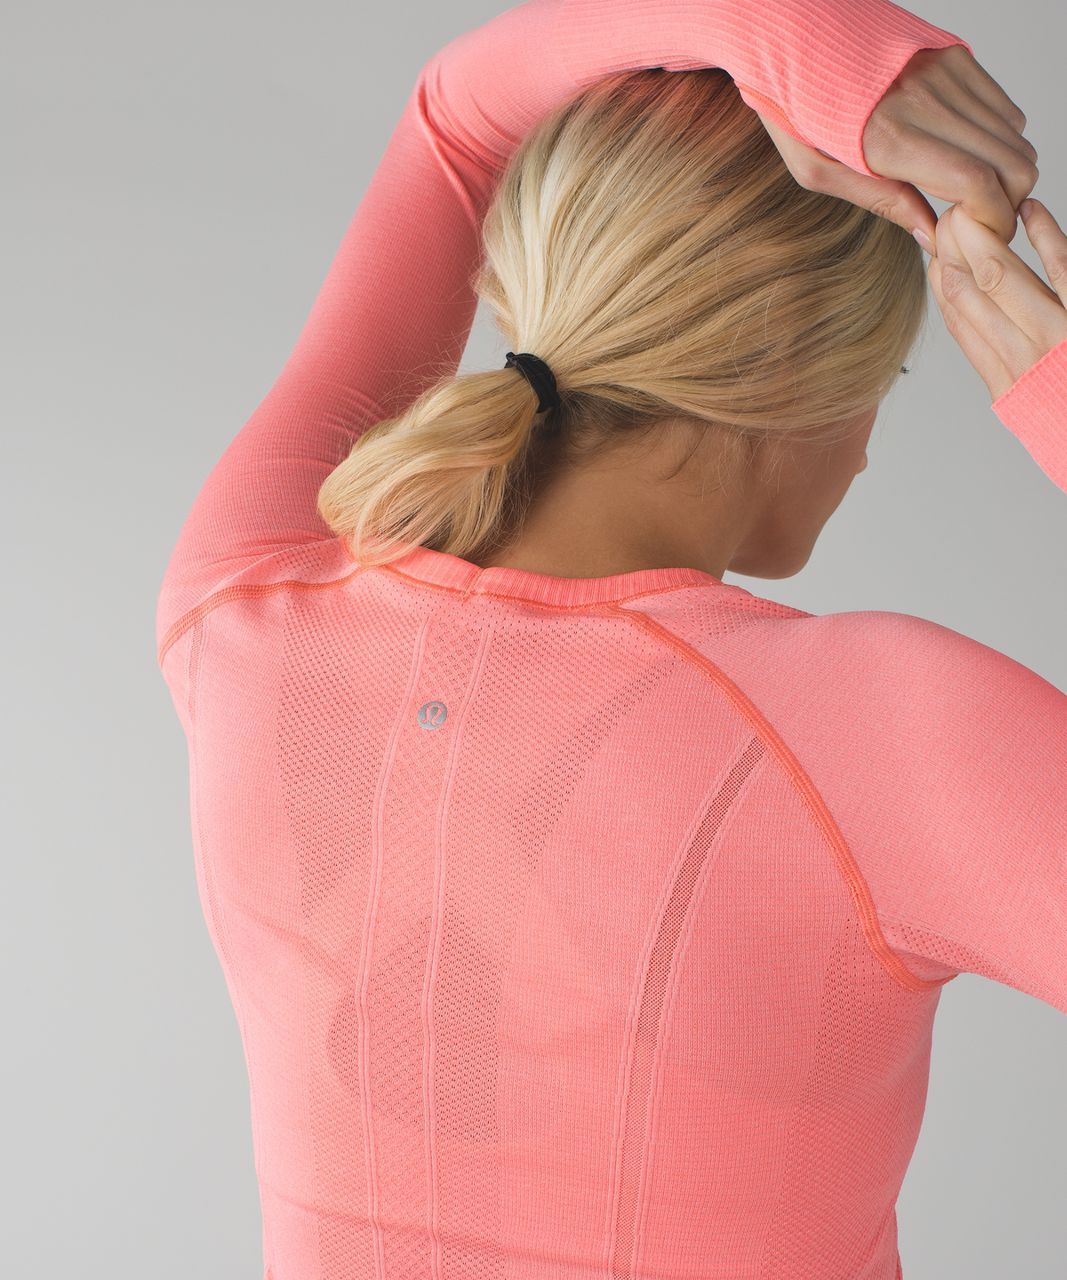 Lululemon Swiftly Tech Long Sleeve Crew - Heathered Very Light Flare (First Release)